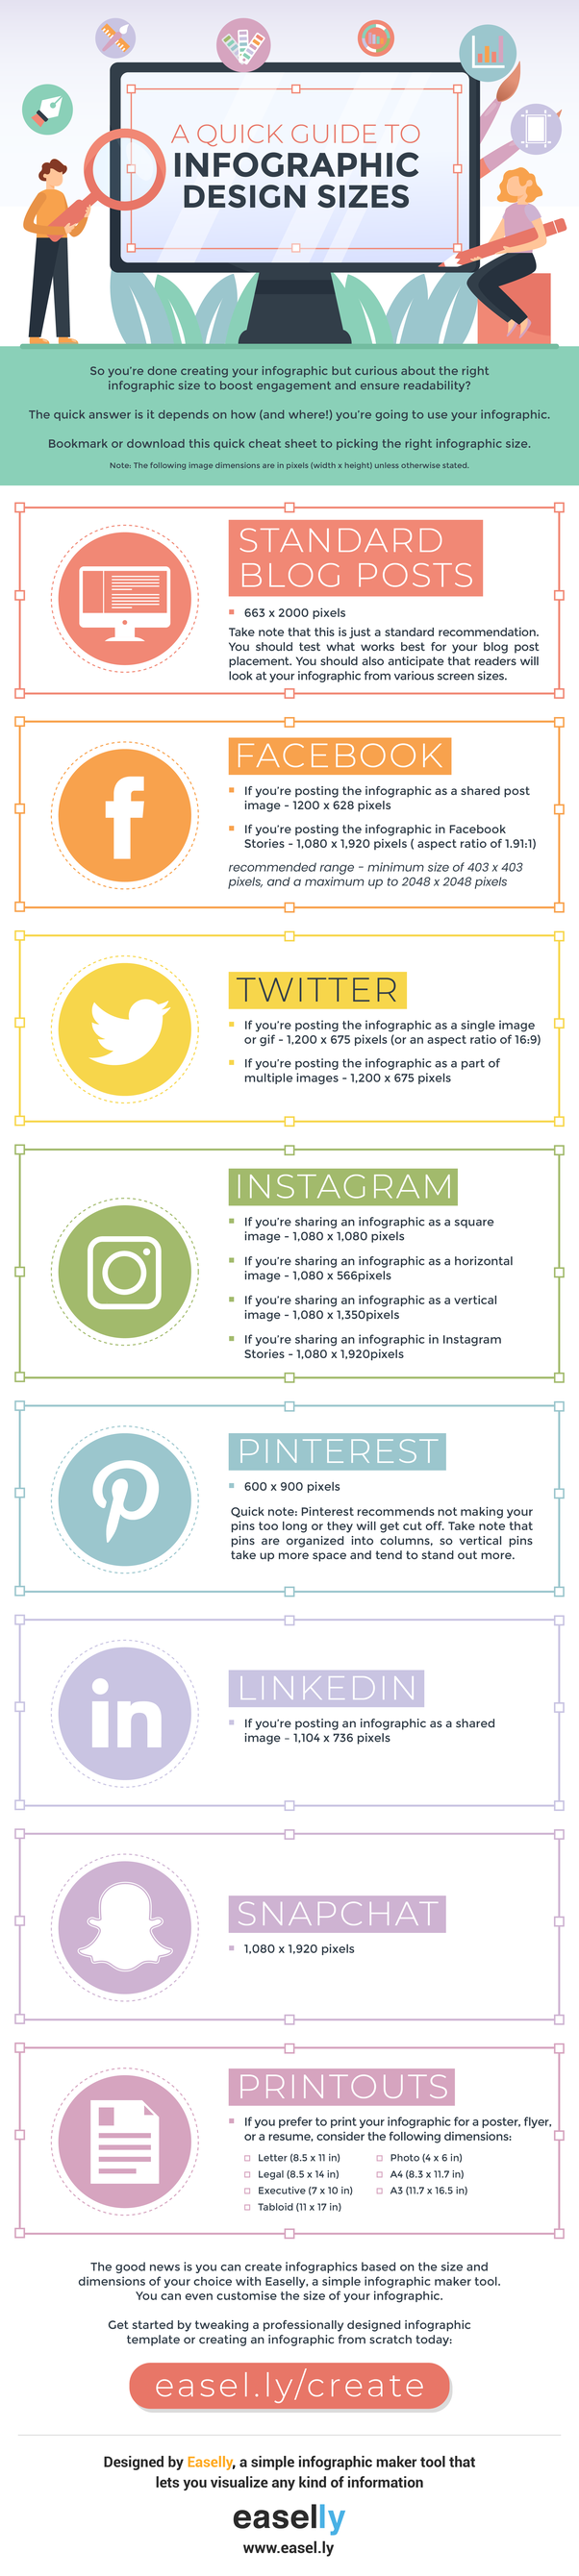 What Is The Best Infographic Size To Share On Facebook And As A Blog Post Quora